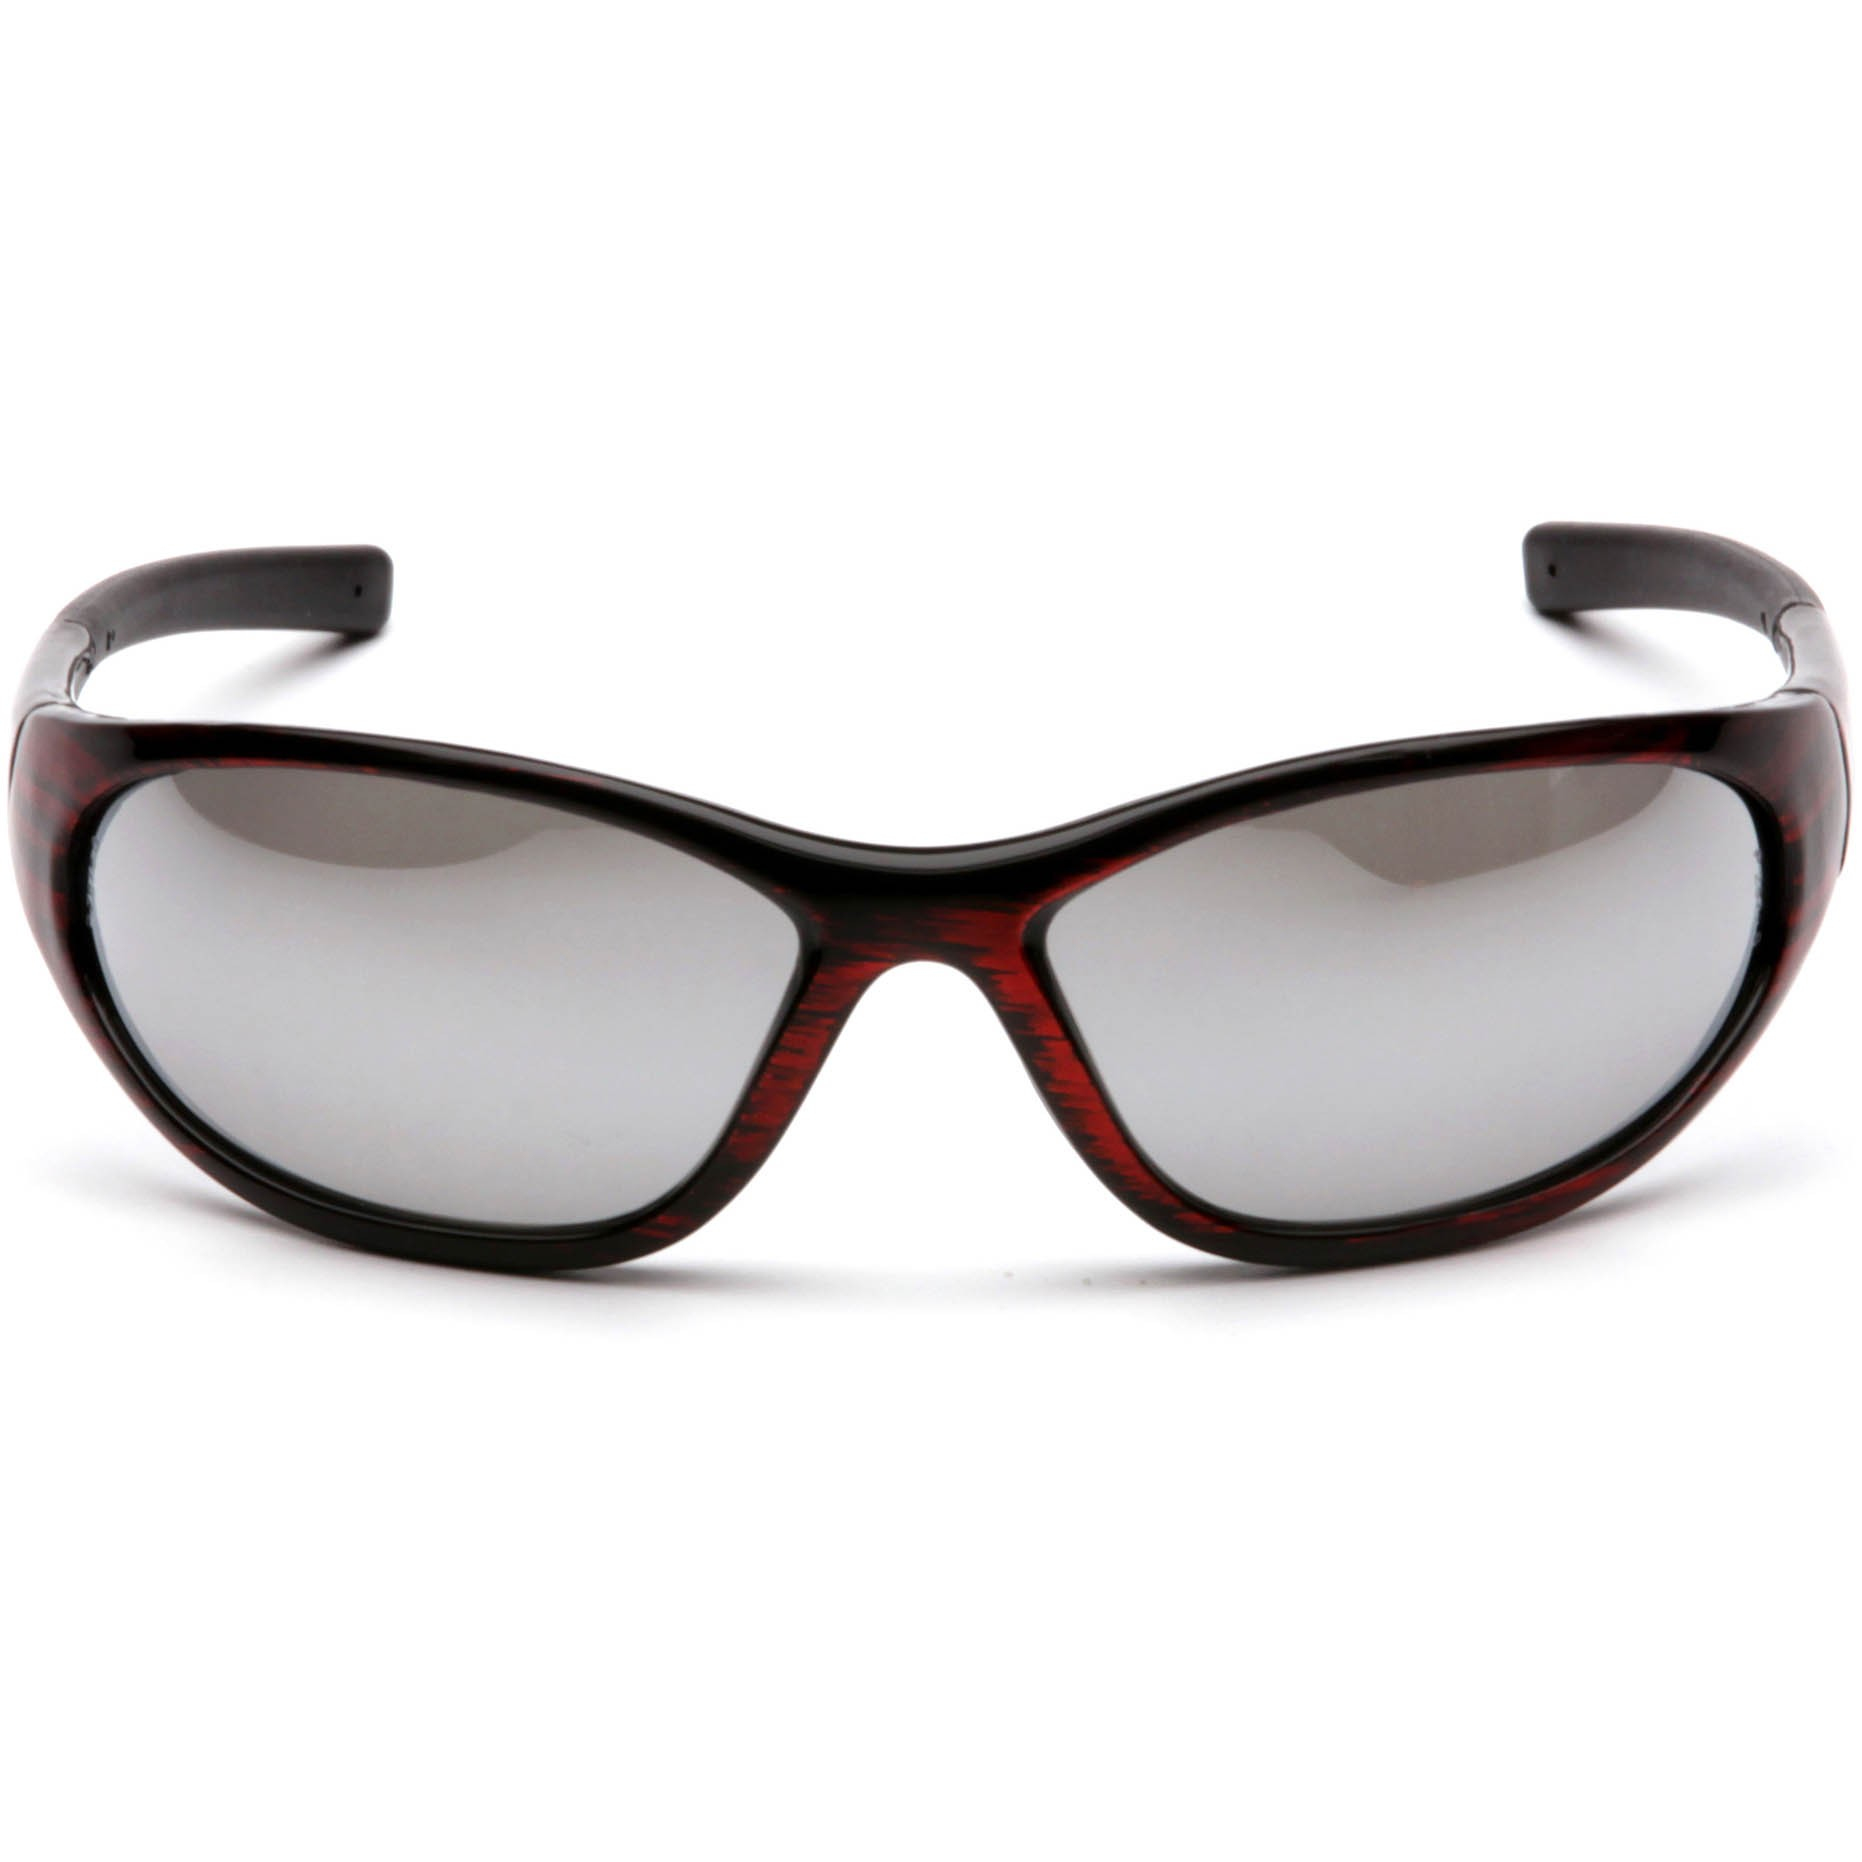 Wood Frame Safety Glasses : Pyramex Zone II Safety Glasses - Red Wood Frame - Silver ...